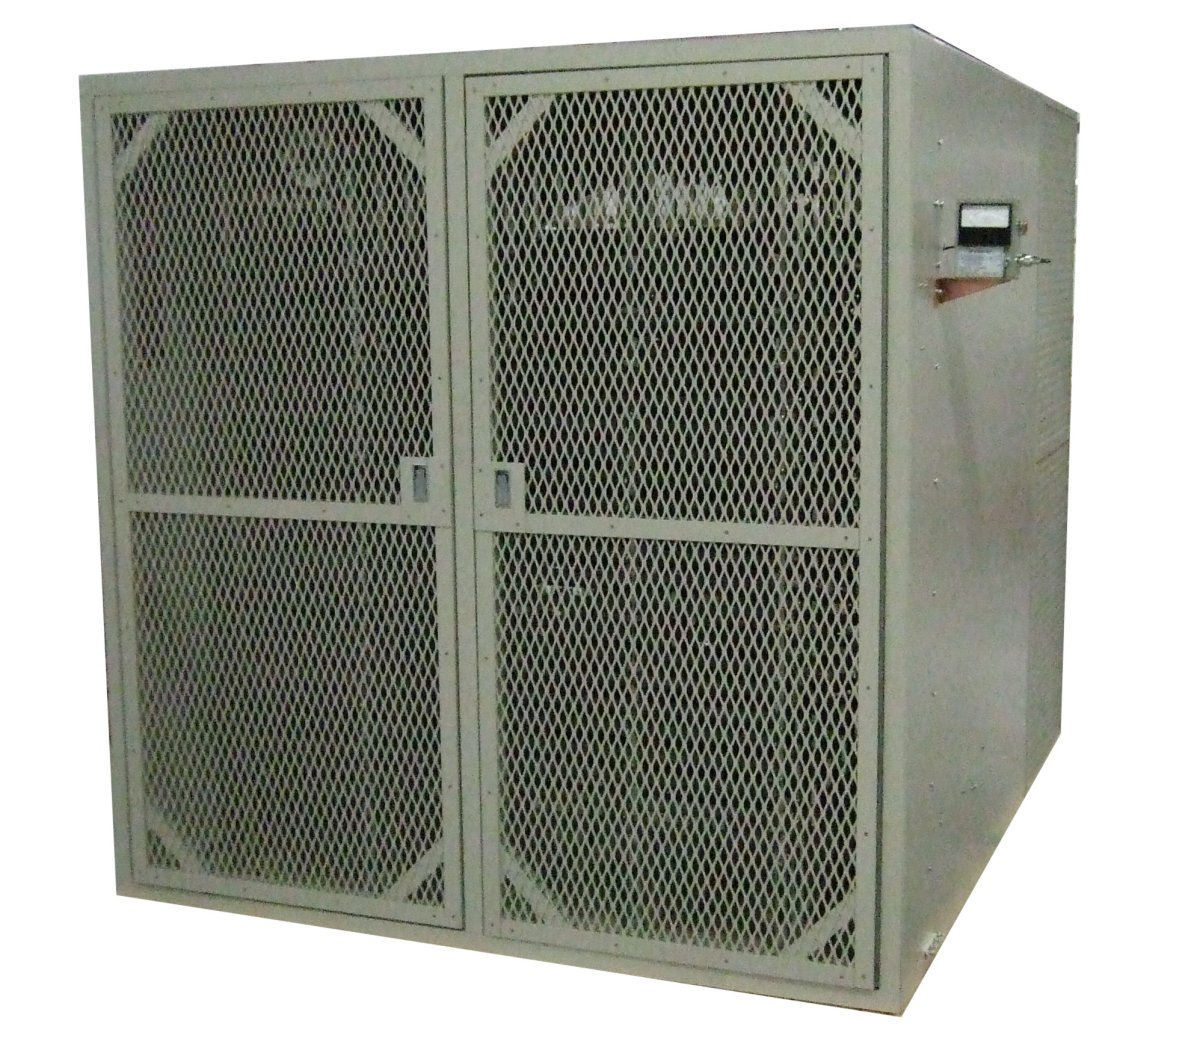 200 kW Dummy Load